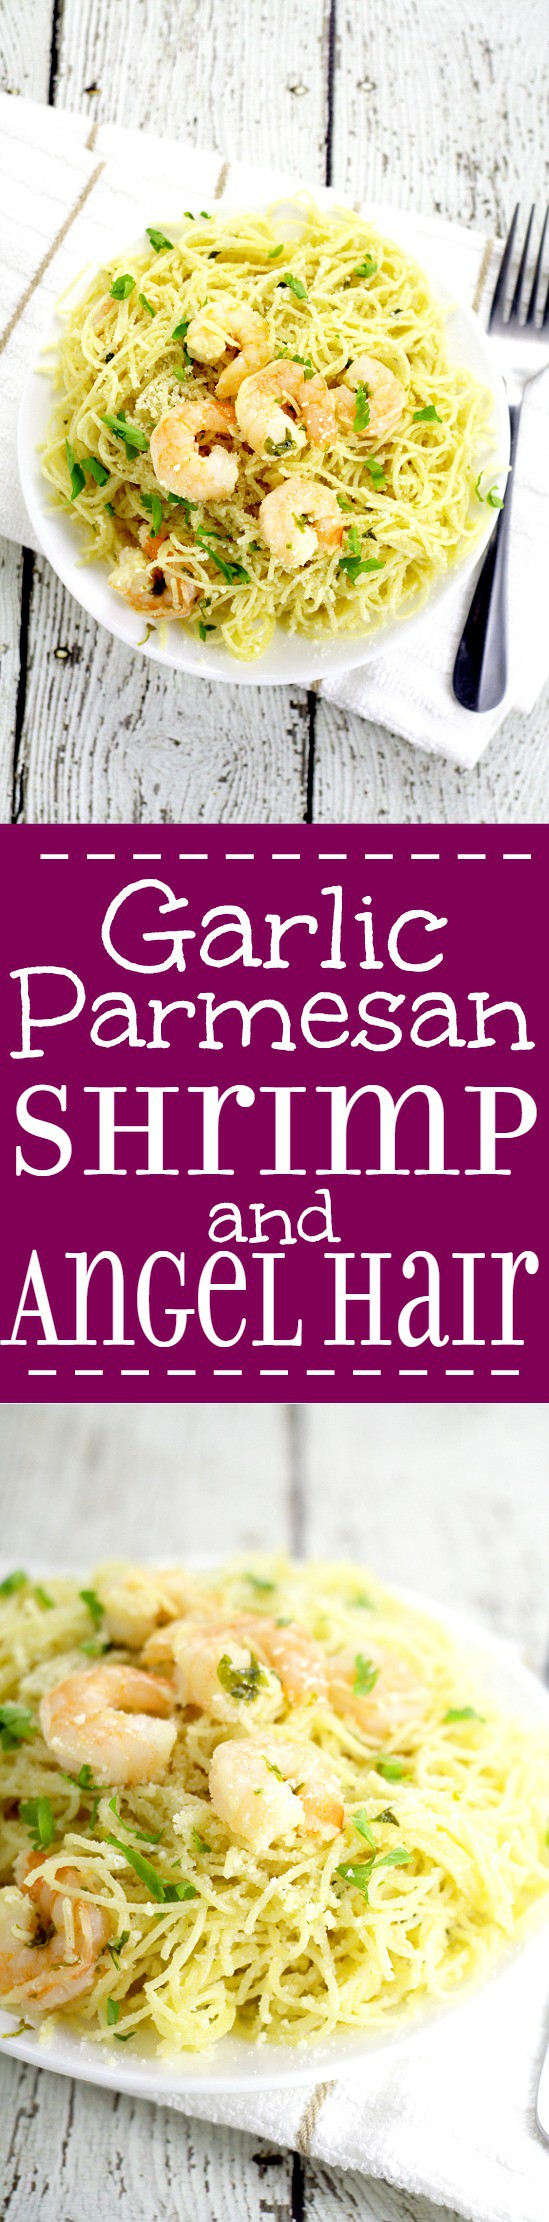 Garlic Parmesan Shrimp and Angel Hair pasta makes a delicious family meal. Juicy shrimp with garlic, butter, and Parmesan cheese adorn a hearty helping of angel hair pasta in this 30 minute Garlic Parmesan Shrimp and Angel Hairdinner recipe.